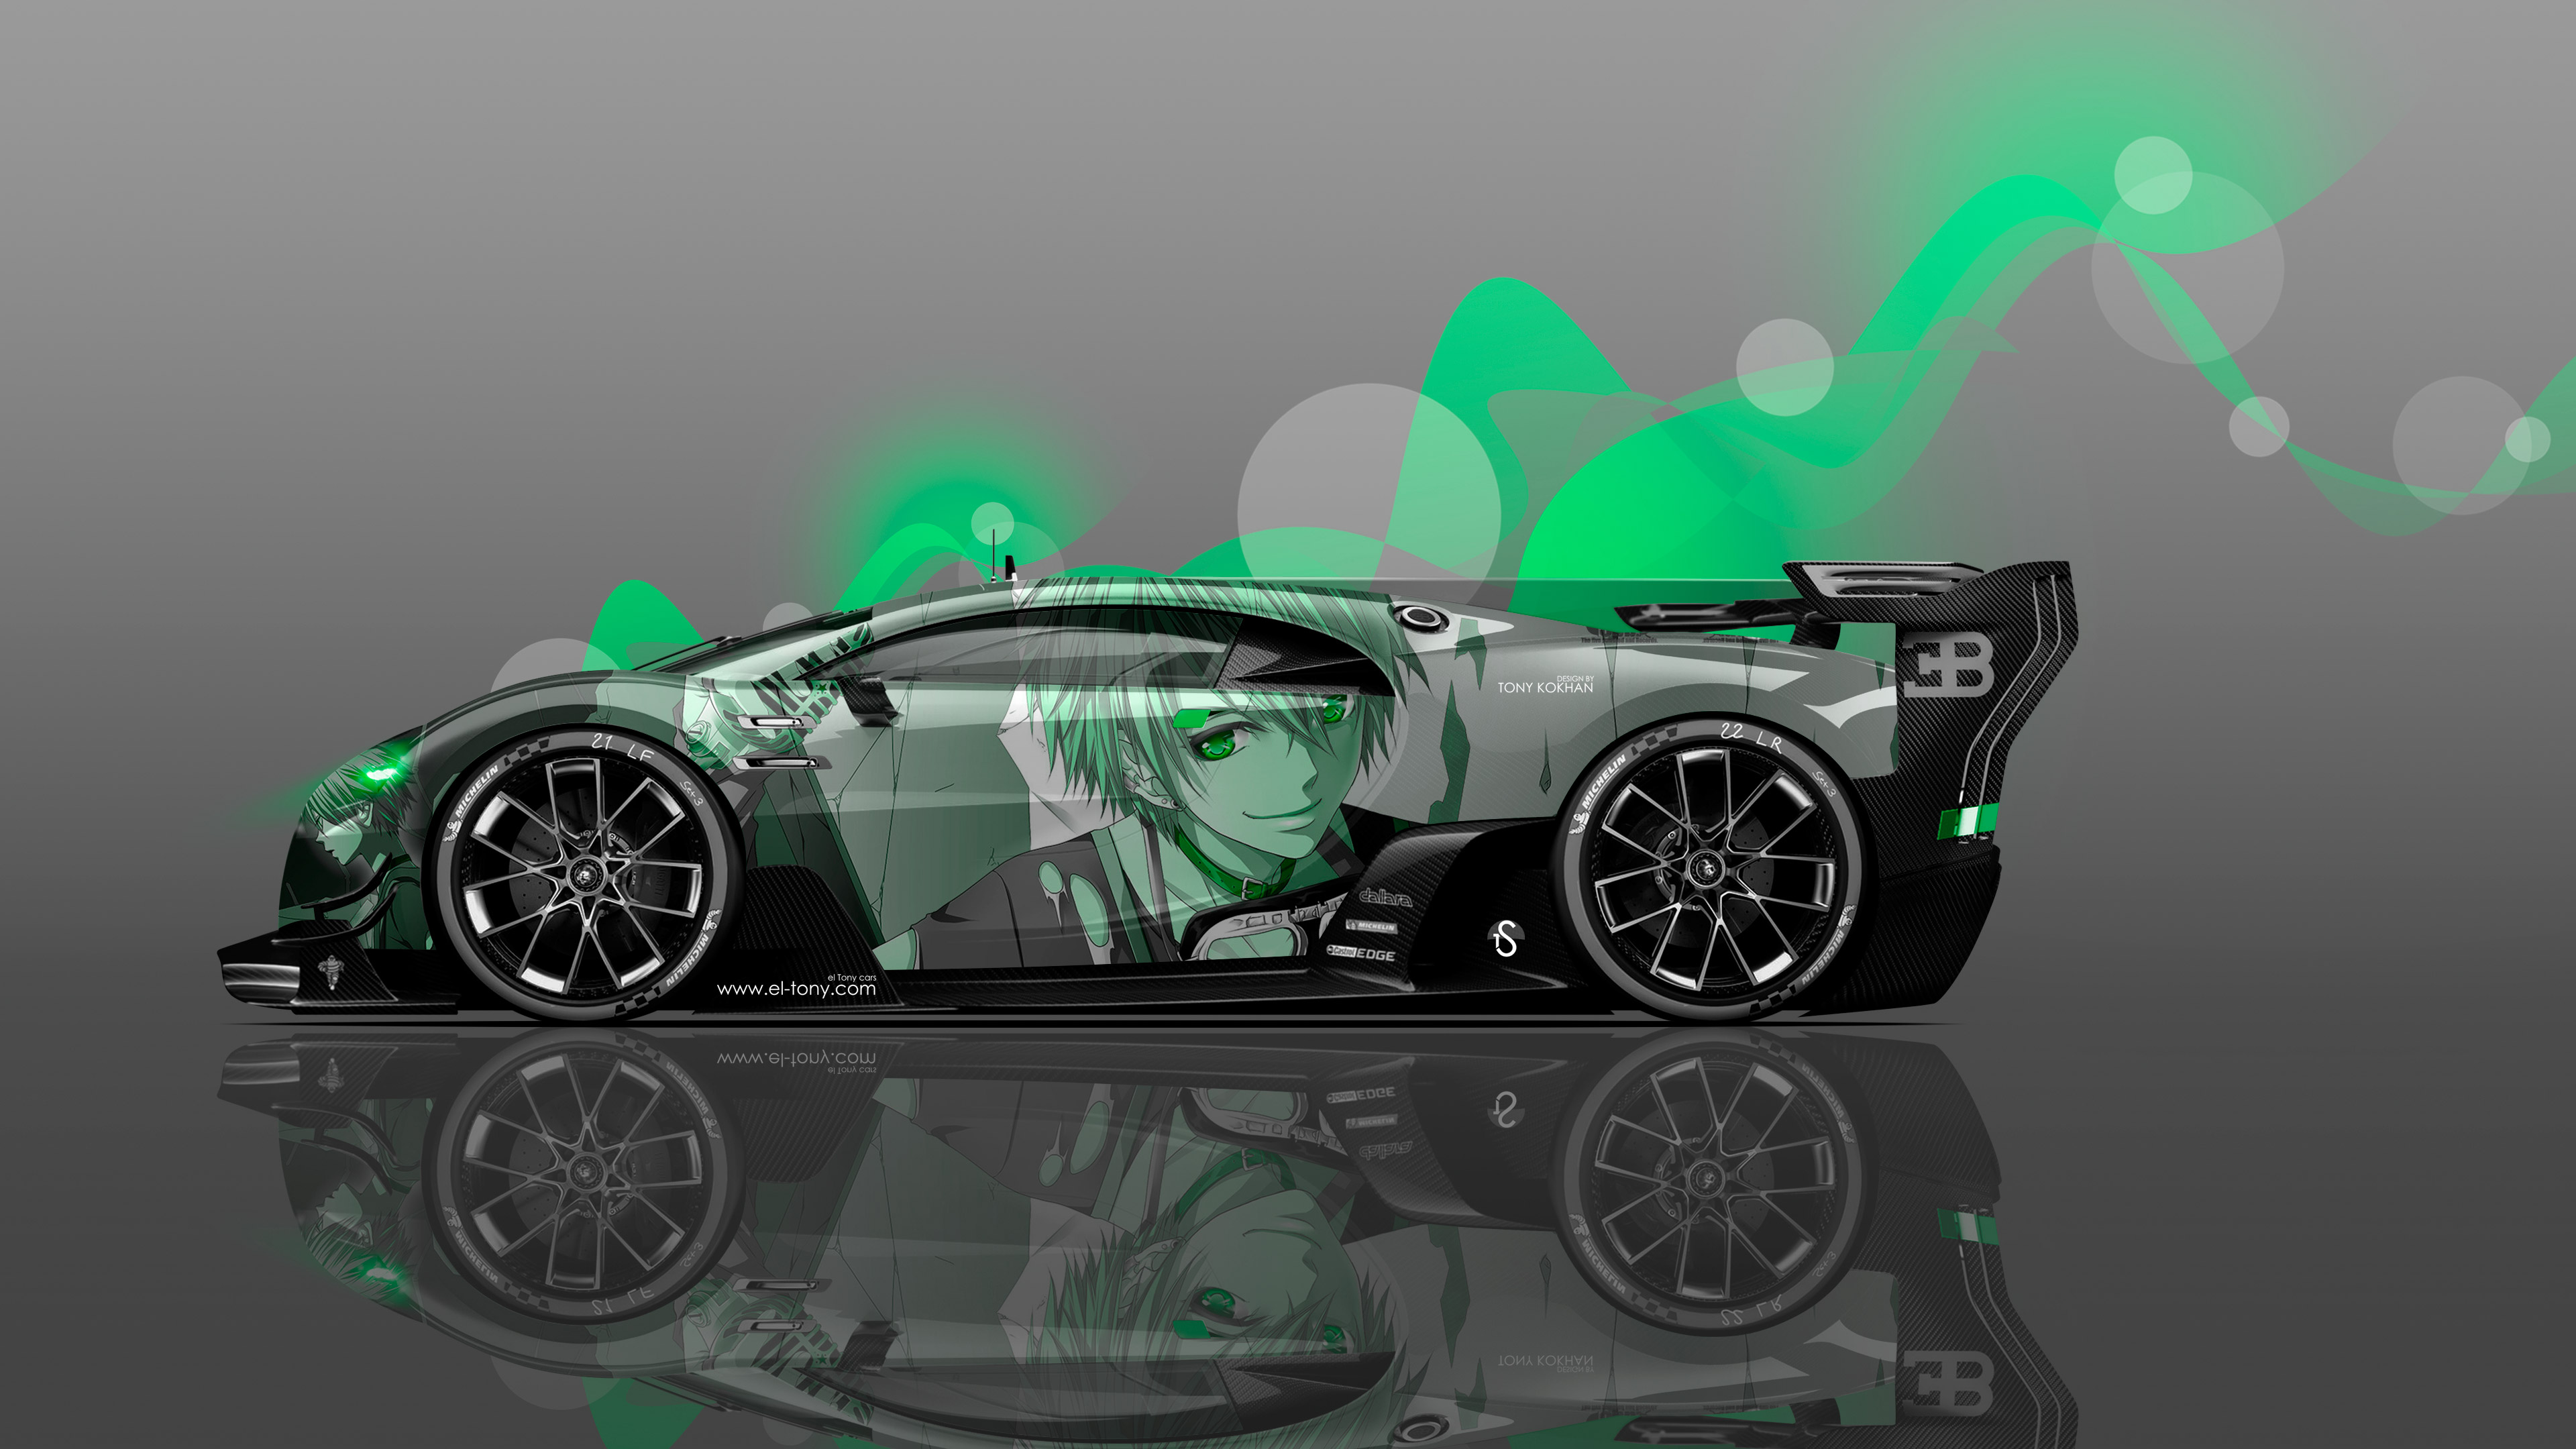 Bugatti-Vision-Gran-Turismo-Side-Anime-Boy-Aerography-Vinyl-Car-2016-Green-Neon-Effects-4K-Wallpapers-design-by-Tony-Kokhan-www.el-tony.com-image